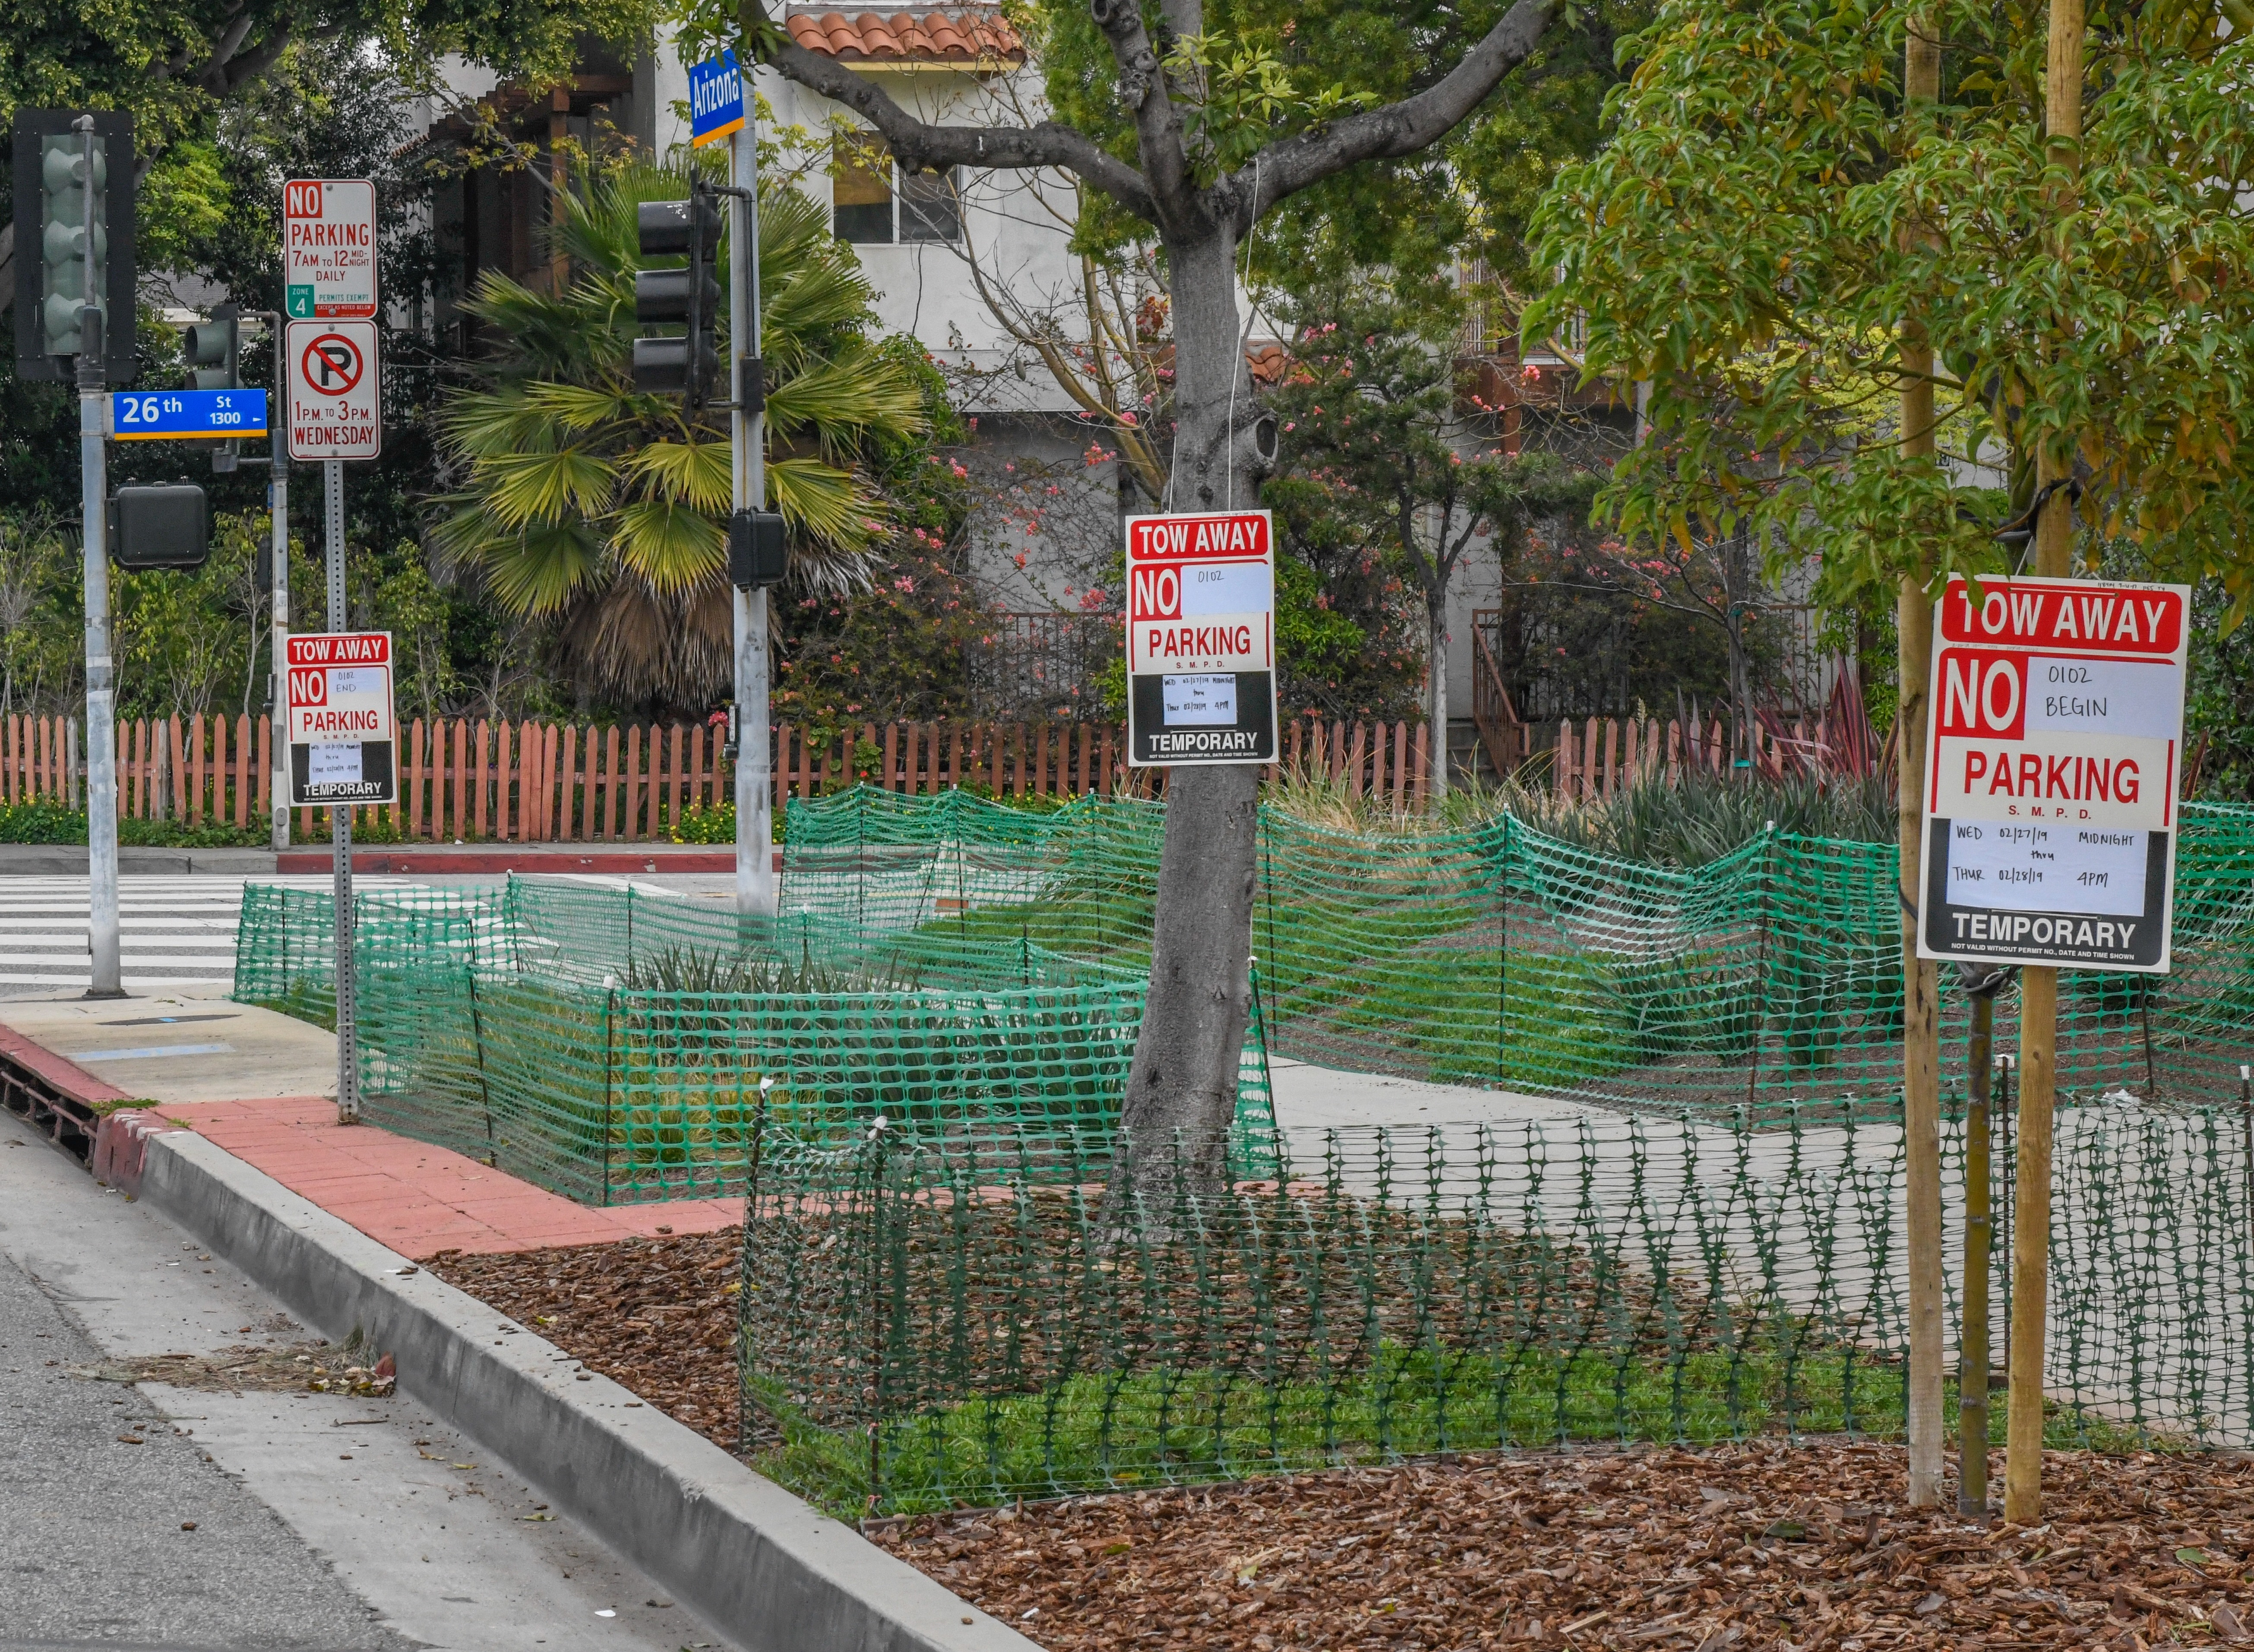 Temporary No Parking Signs - Planning & Community